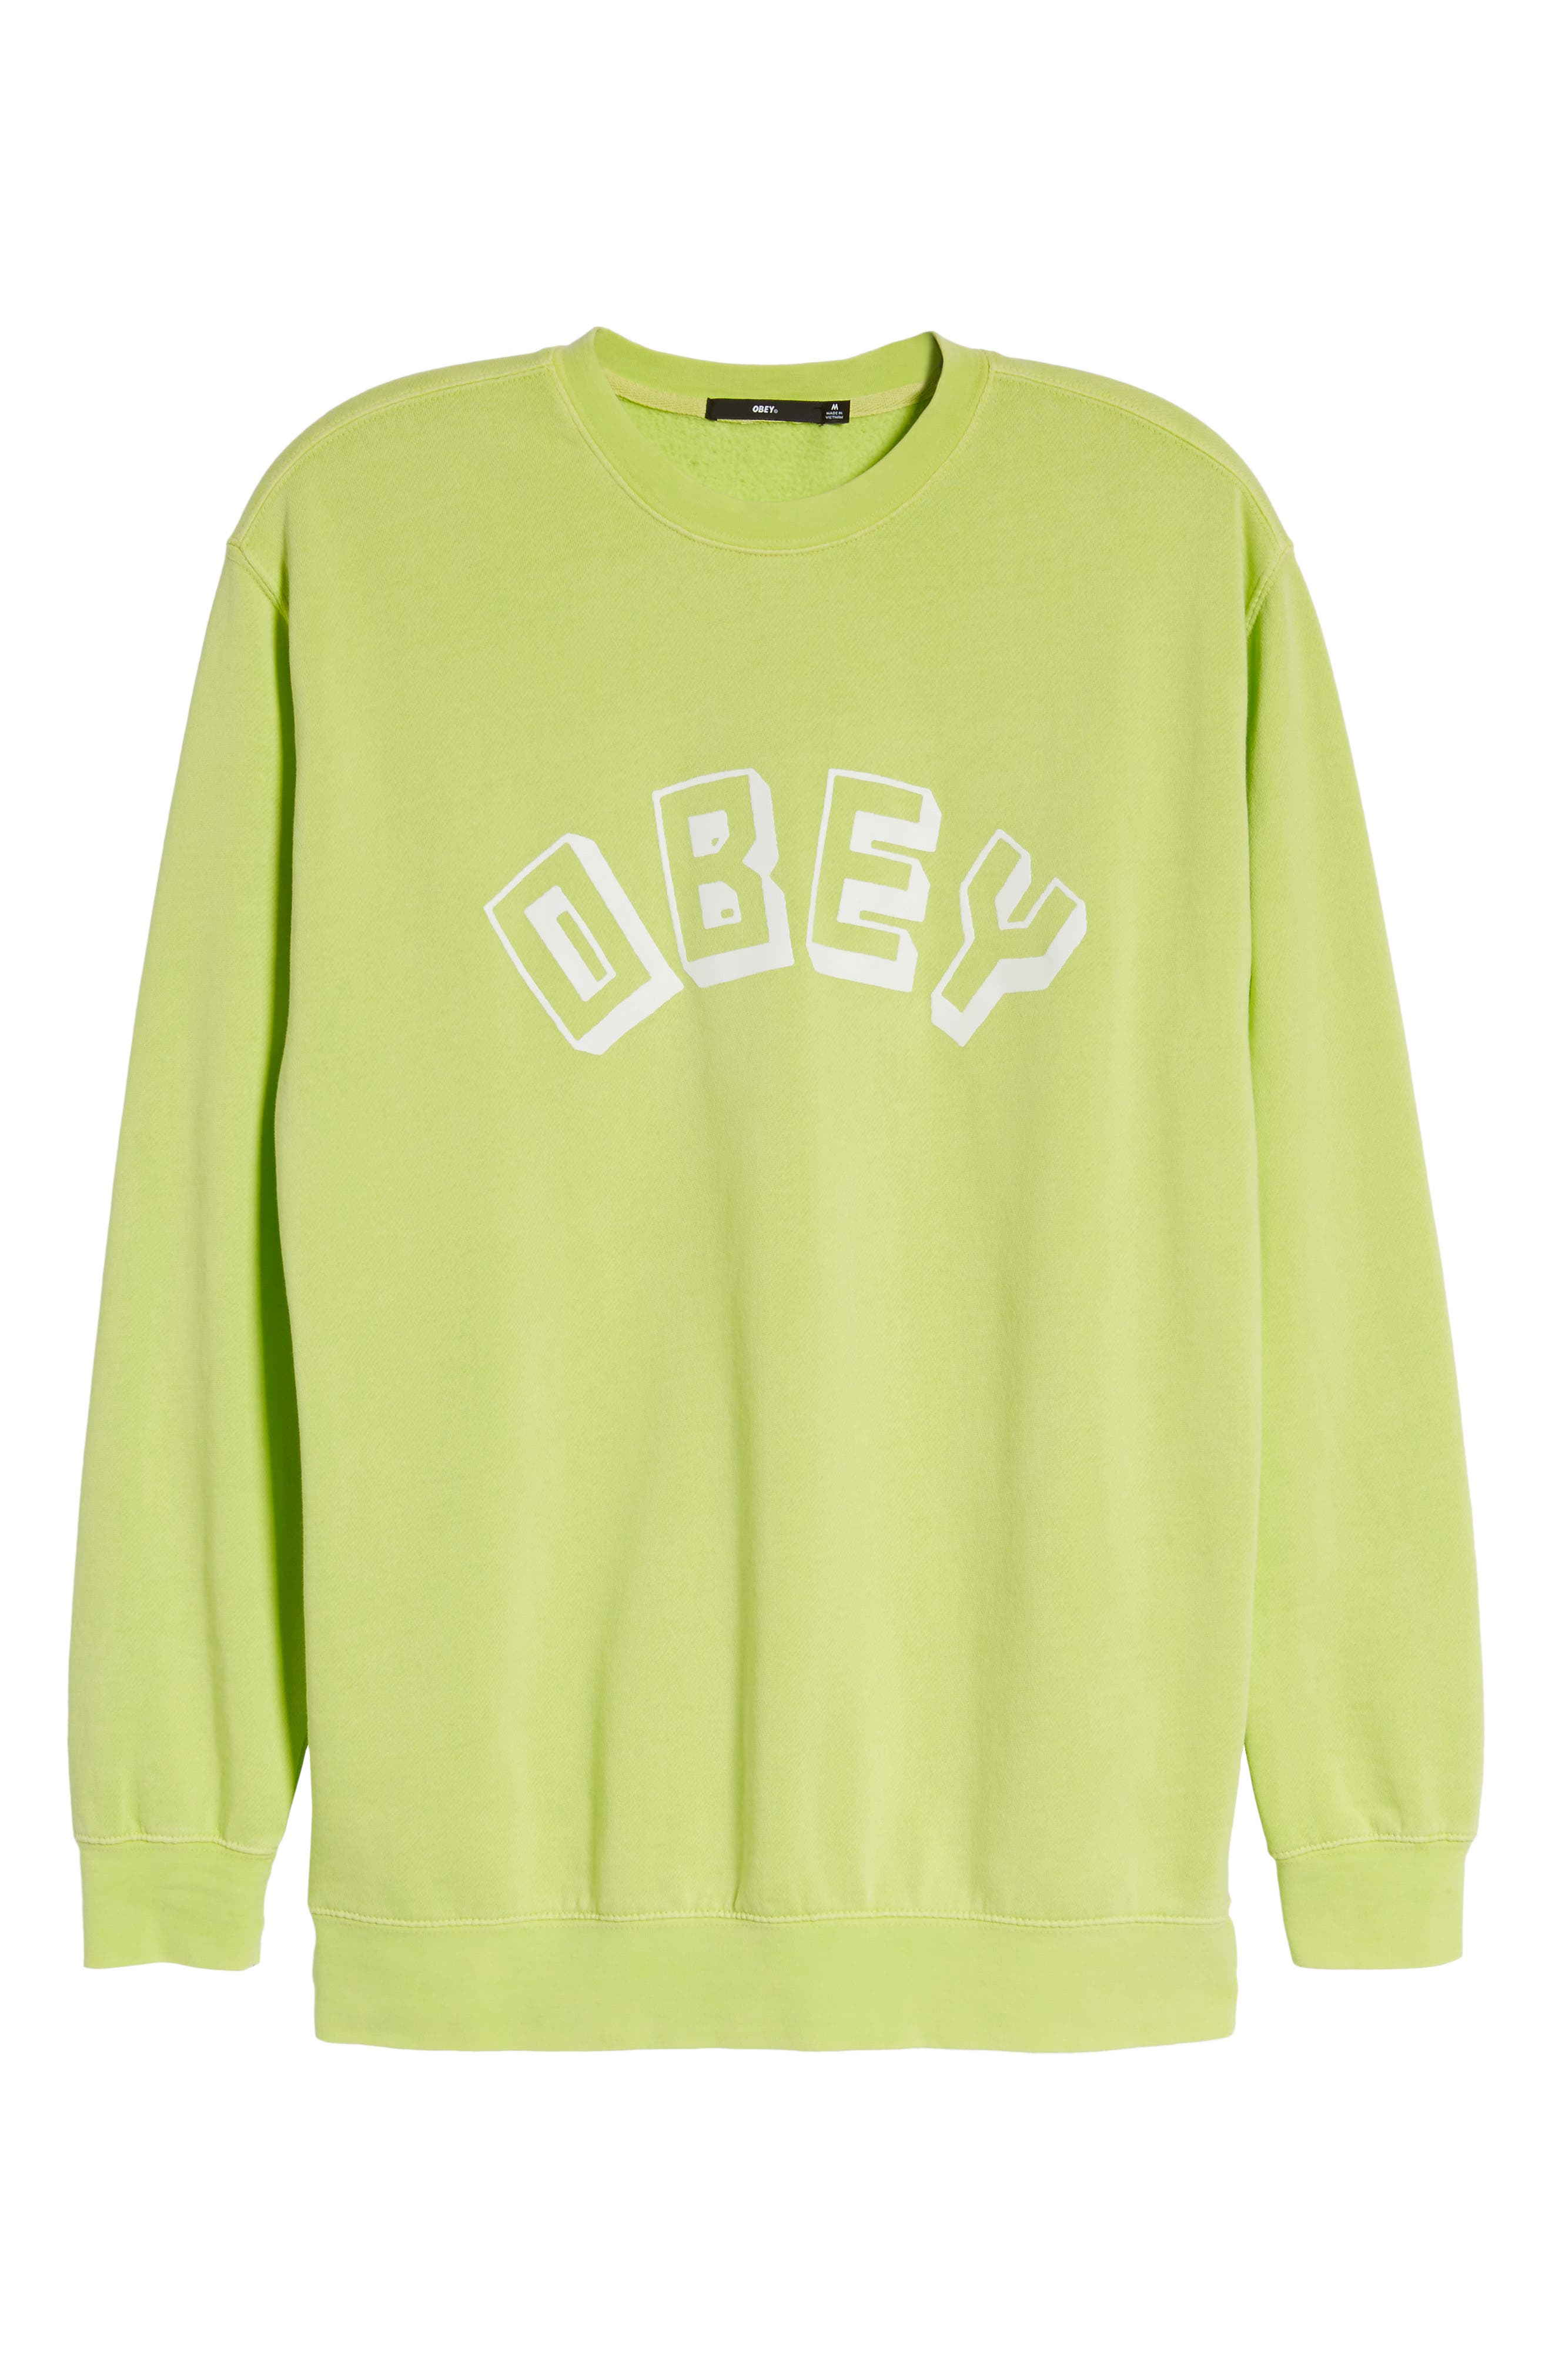 New World Sweatshirt,                             Alternate thumbnail 6, color,                             323